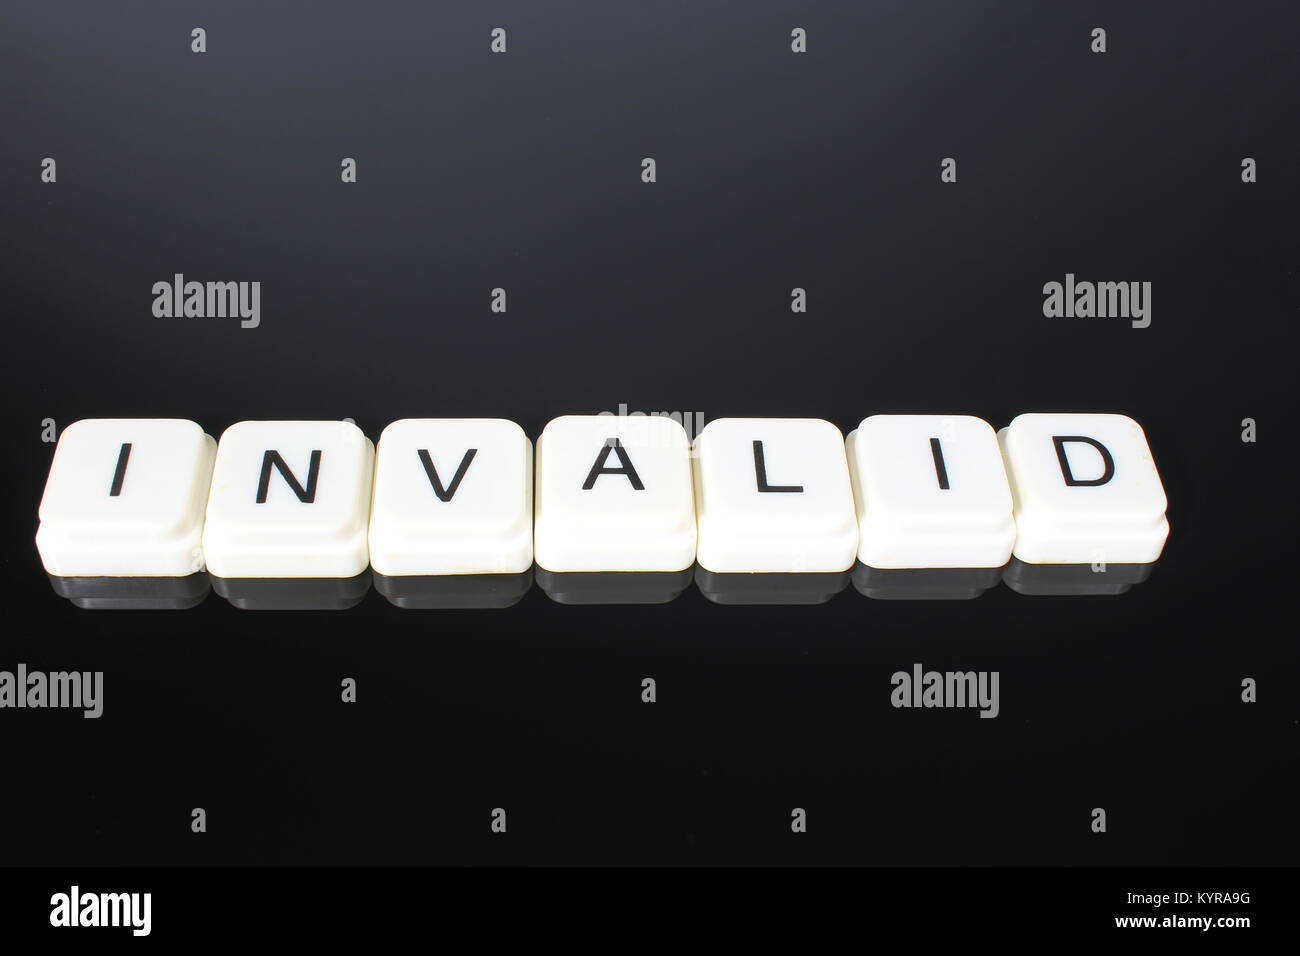 Invalid text word title caption label cover backdrop background. Alphabet letter toy blocks on black reflective - Stock Image